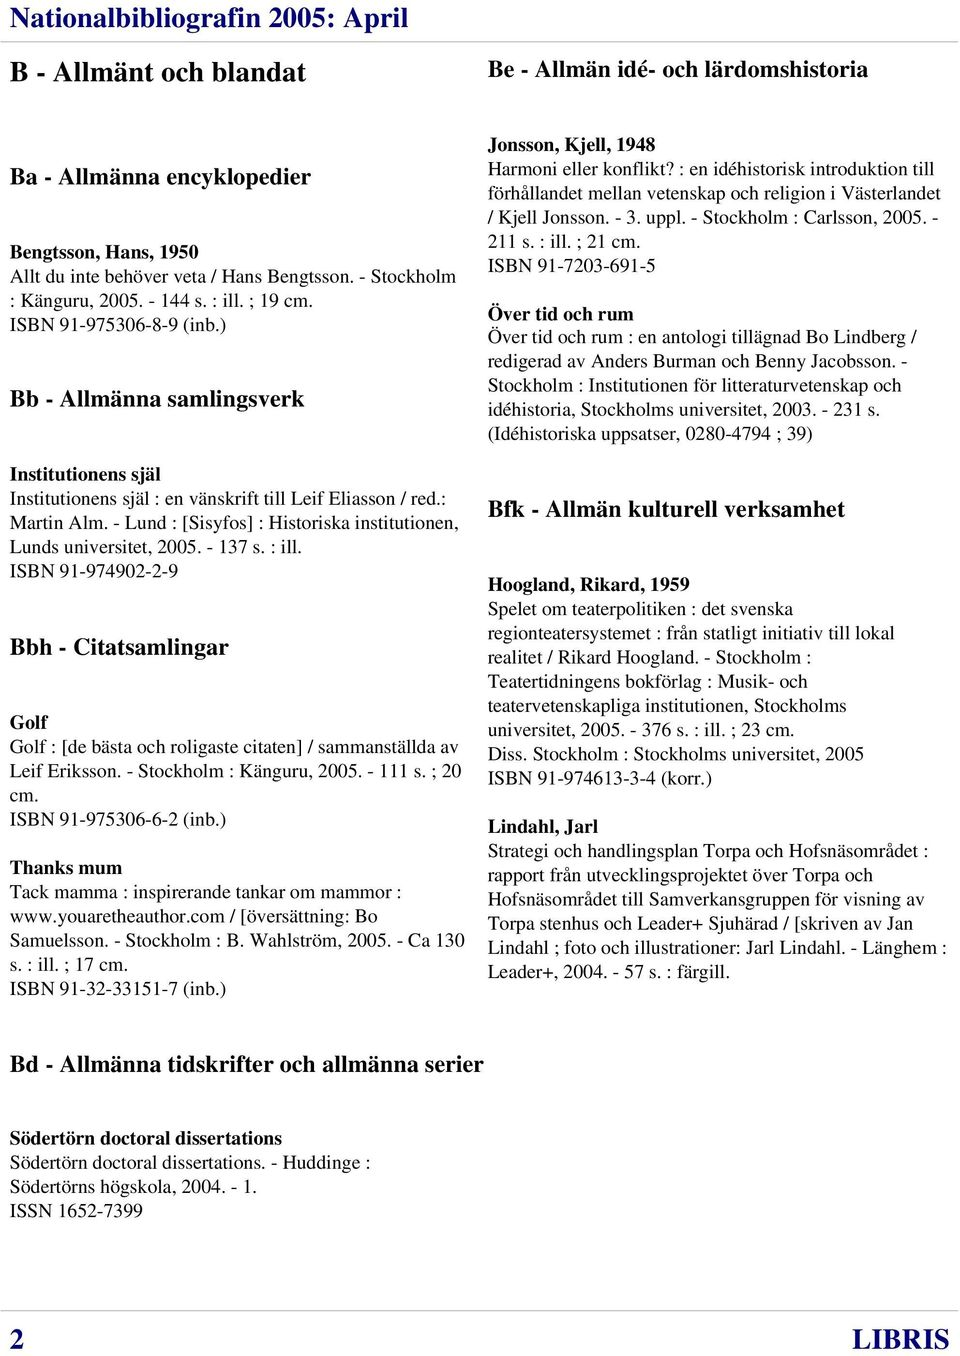 - Lund : [Sisyfos] : Historiska institutionen, Lunds universitet, 2005. - 137 s. : ill.